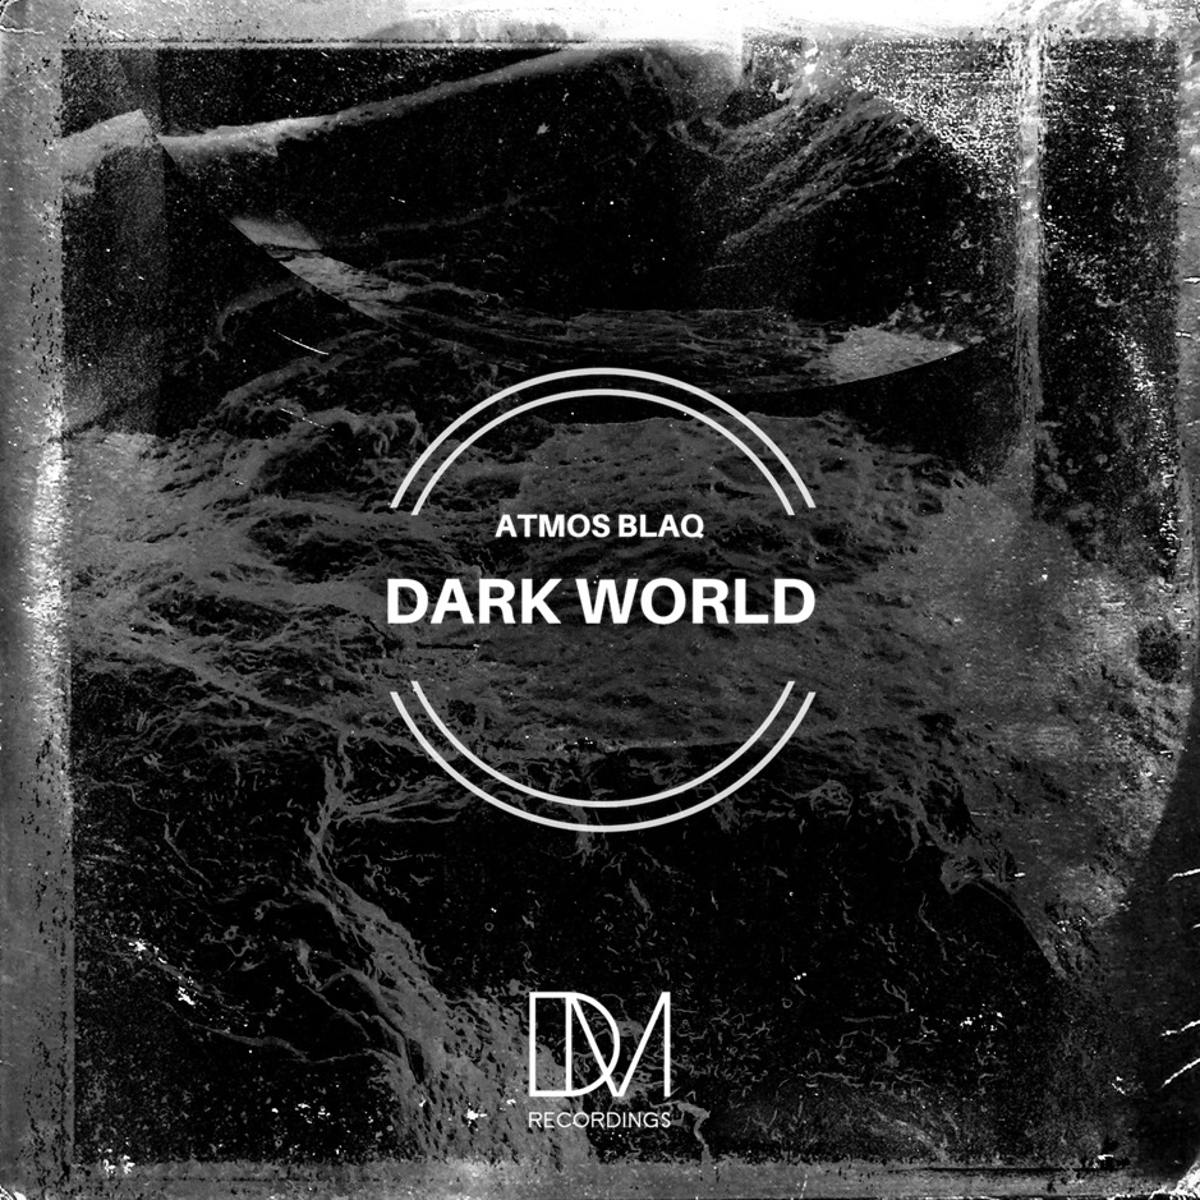 Atmos Blaq Dark World EP - Atmos Blaq – iKoti iKoti (Atmospheric Mix)